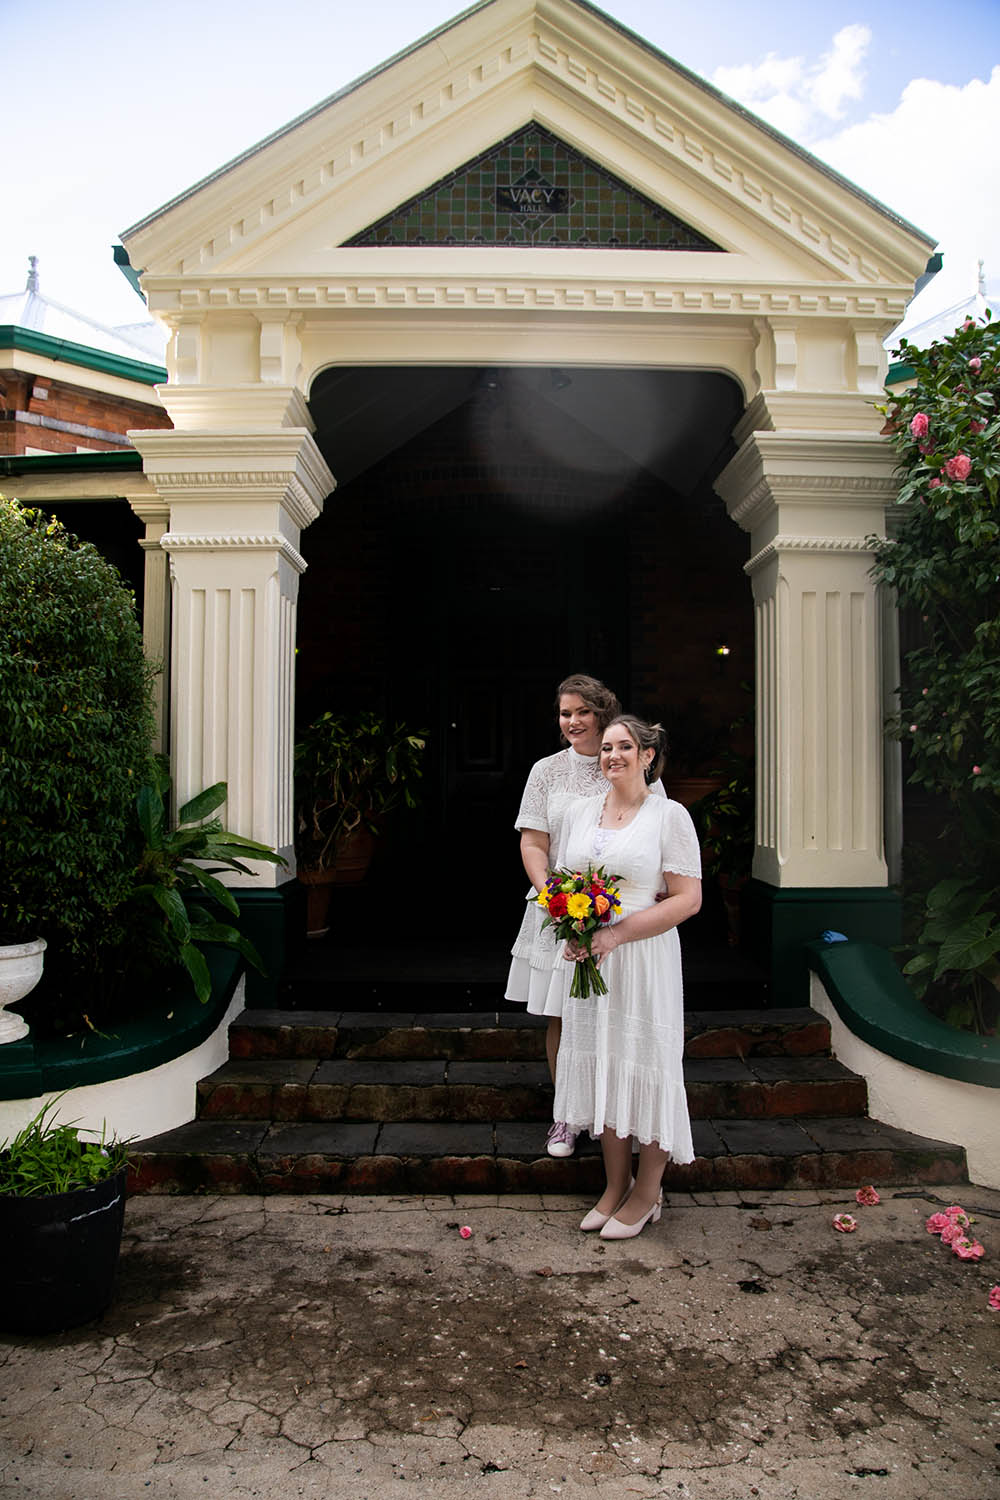 Wedding Photography - Brides in front of old building